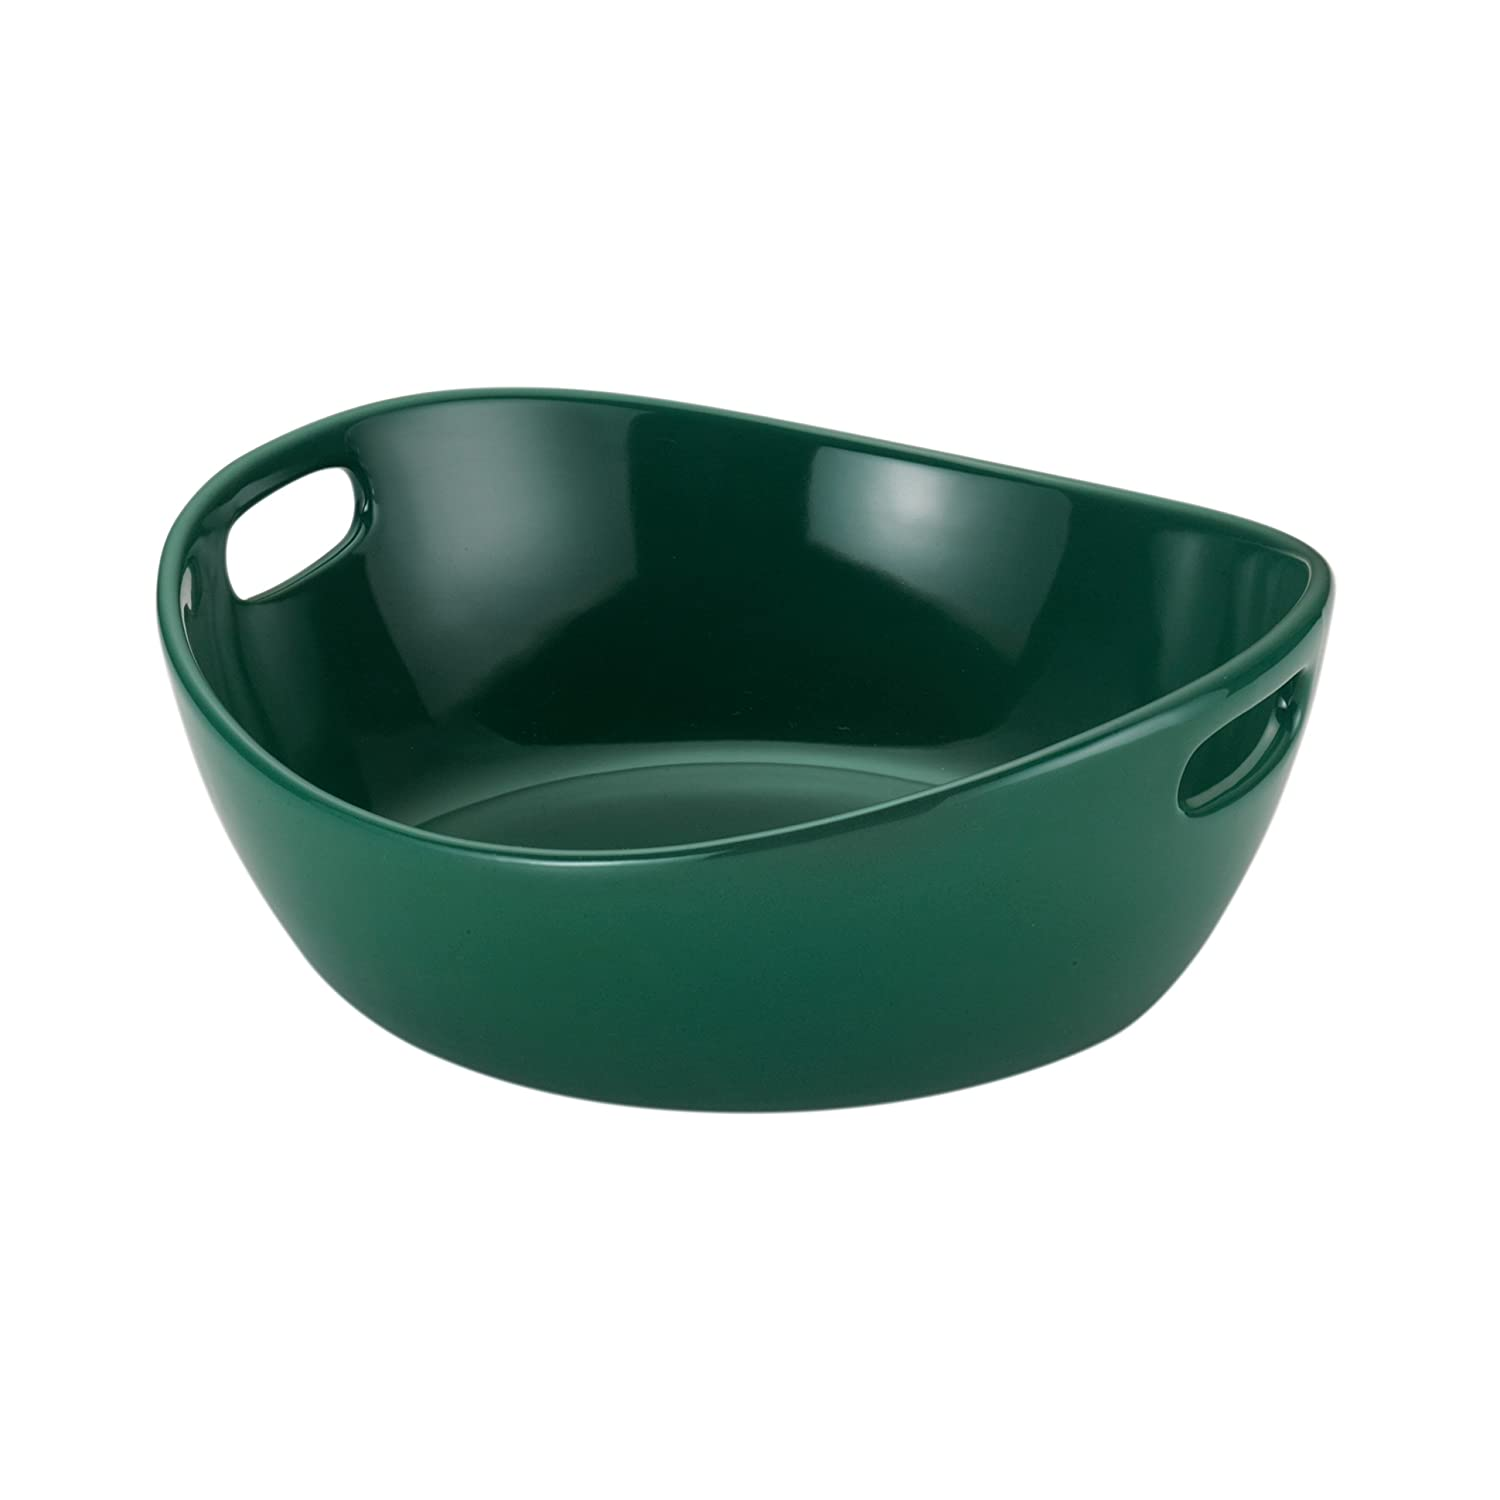 Rachael Ray Serveware 10-Inch Round Stoneware Serving Bowl, Fennel Meyer 58586